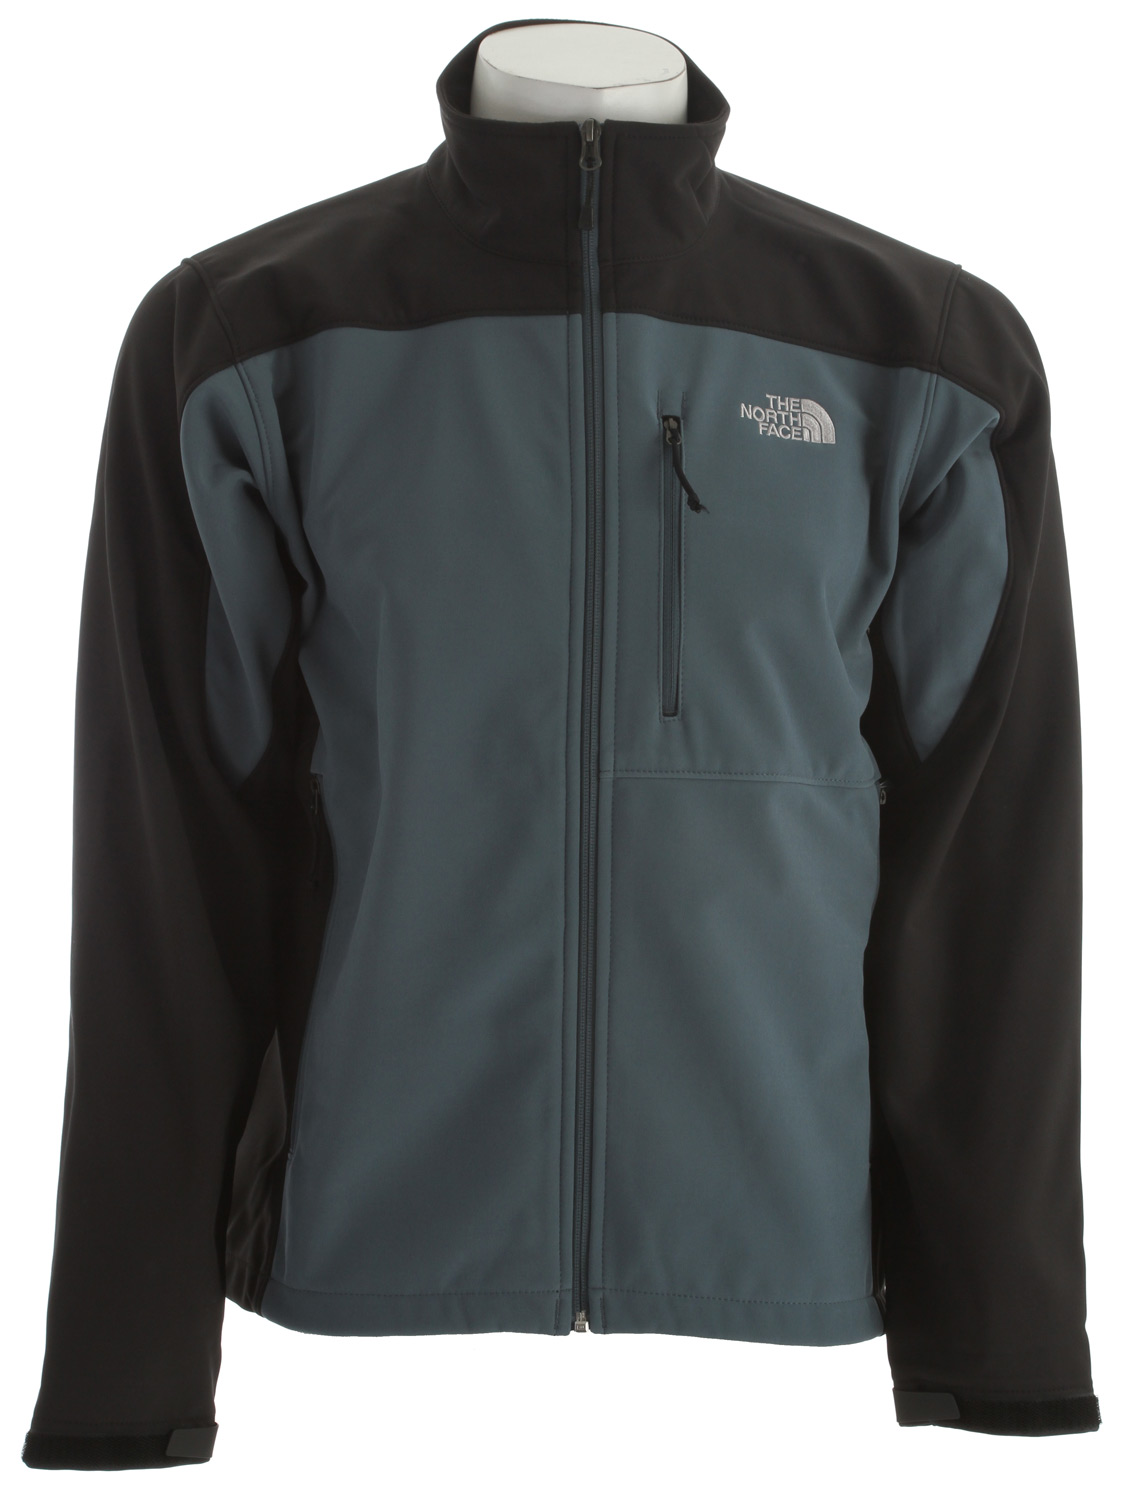 The North Face most versatile and widely worn soft shell has enhanced windproof features and a stretchy, comfortable fit; ideal for multiple activities.Key Features of the The North Face Apex Bionic Jacket: Standard fit TNF Apex ClimateBlock fabric wind permeability rated at 0 CFM Fleece backer Napoleon chest pocket Two hand pockets Velcro adjustable cuffs with molded cuff tabs Hem cinch-cord adjustment in pockets - $103.95